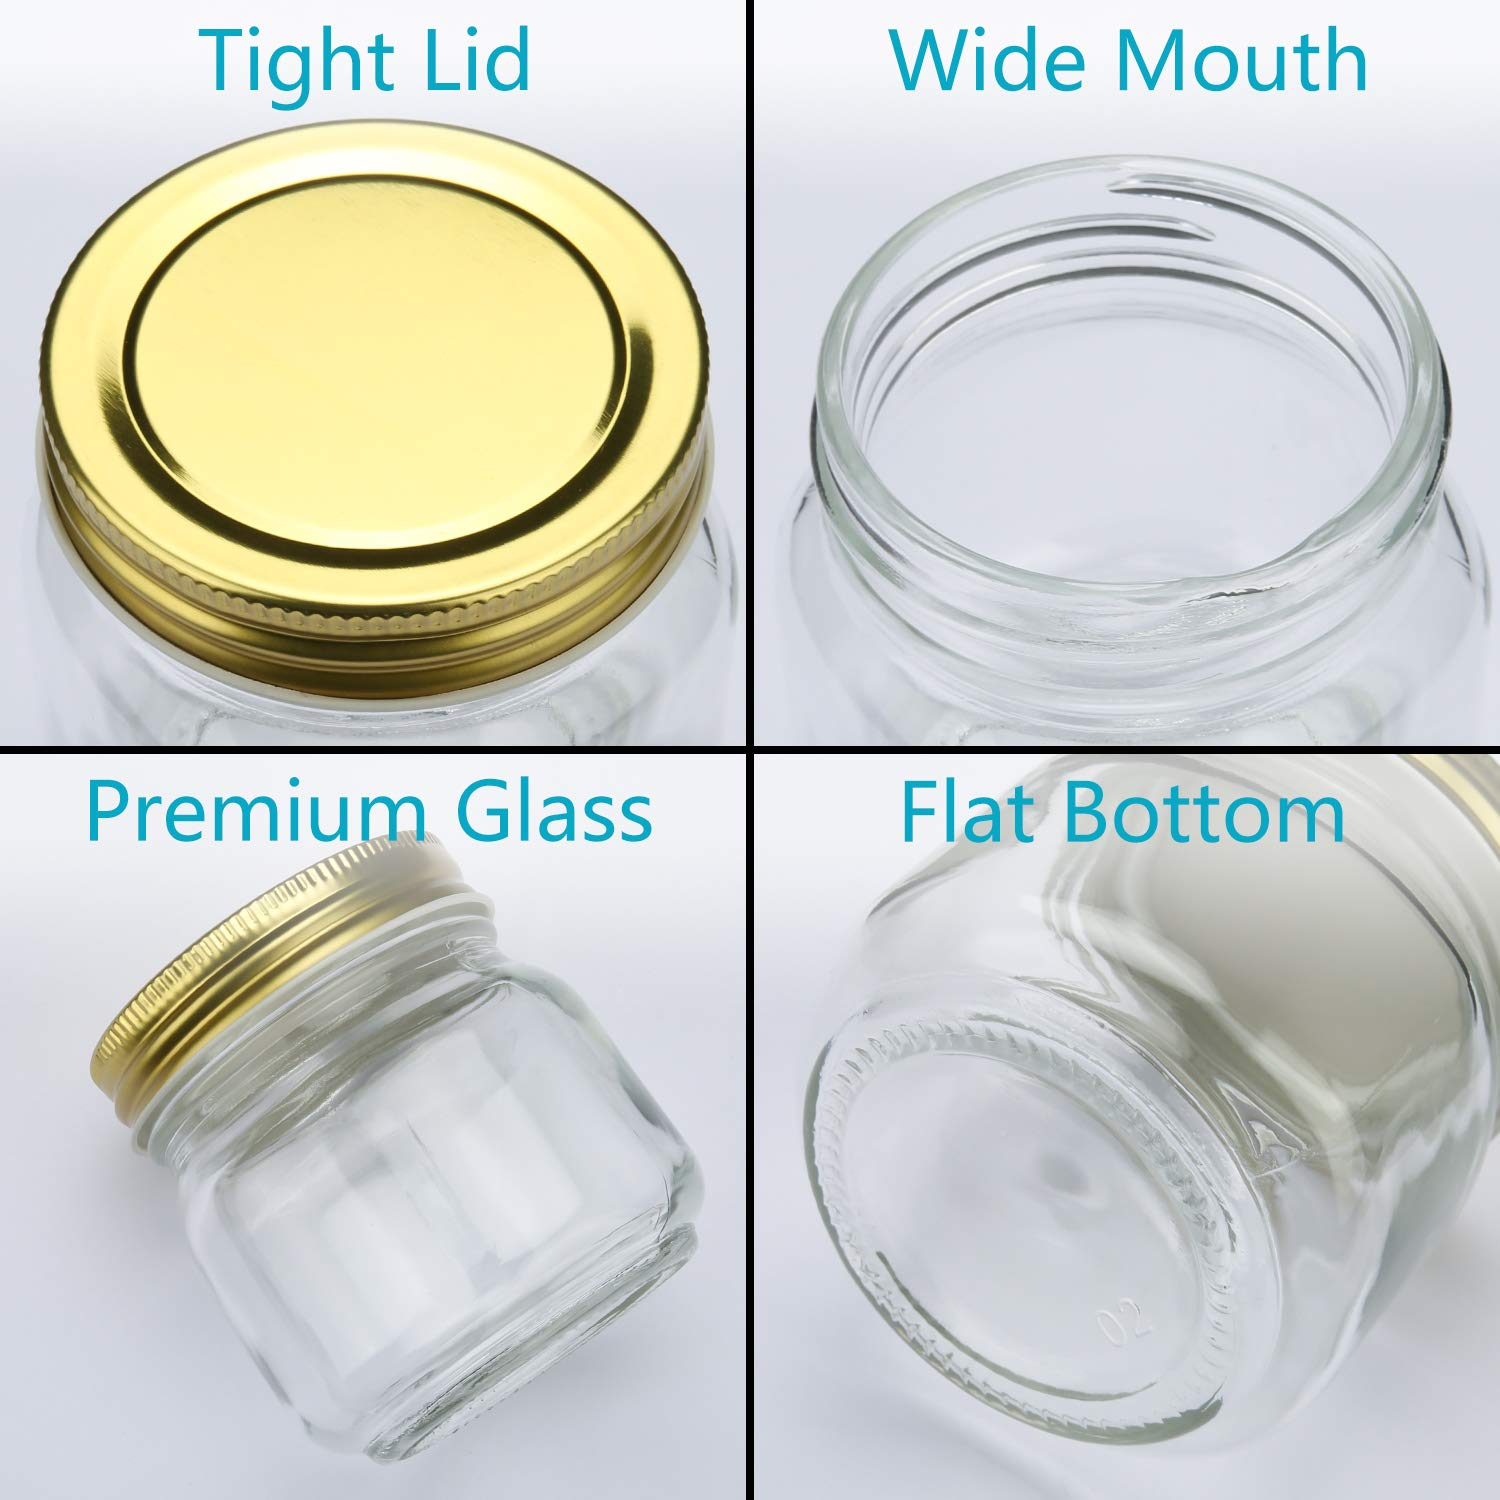 Encheng 8 oz Glass Jars With Lids,Ball Wide Mouth Mason Jars For Storage,Canning Jars For Caviar,Herb,Jelly,Jams,Honey,Dishware Safe,Set Of 24 by Encheng (Image #3)